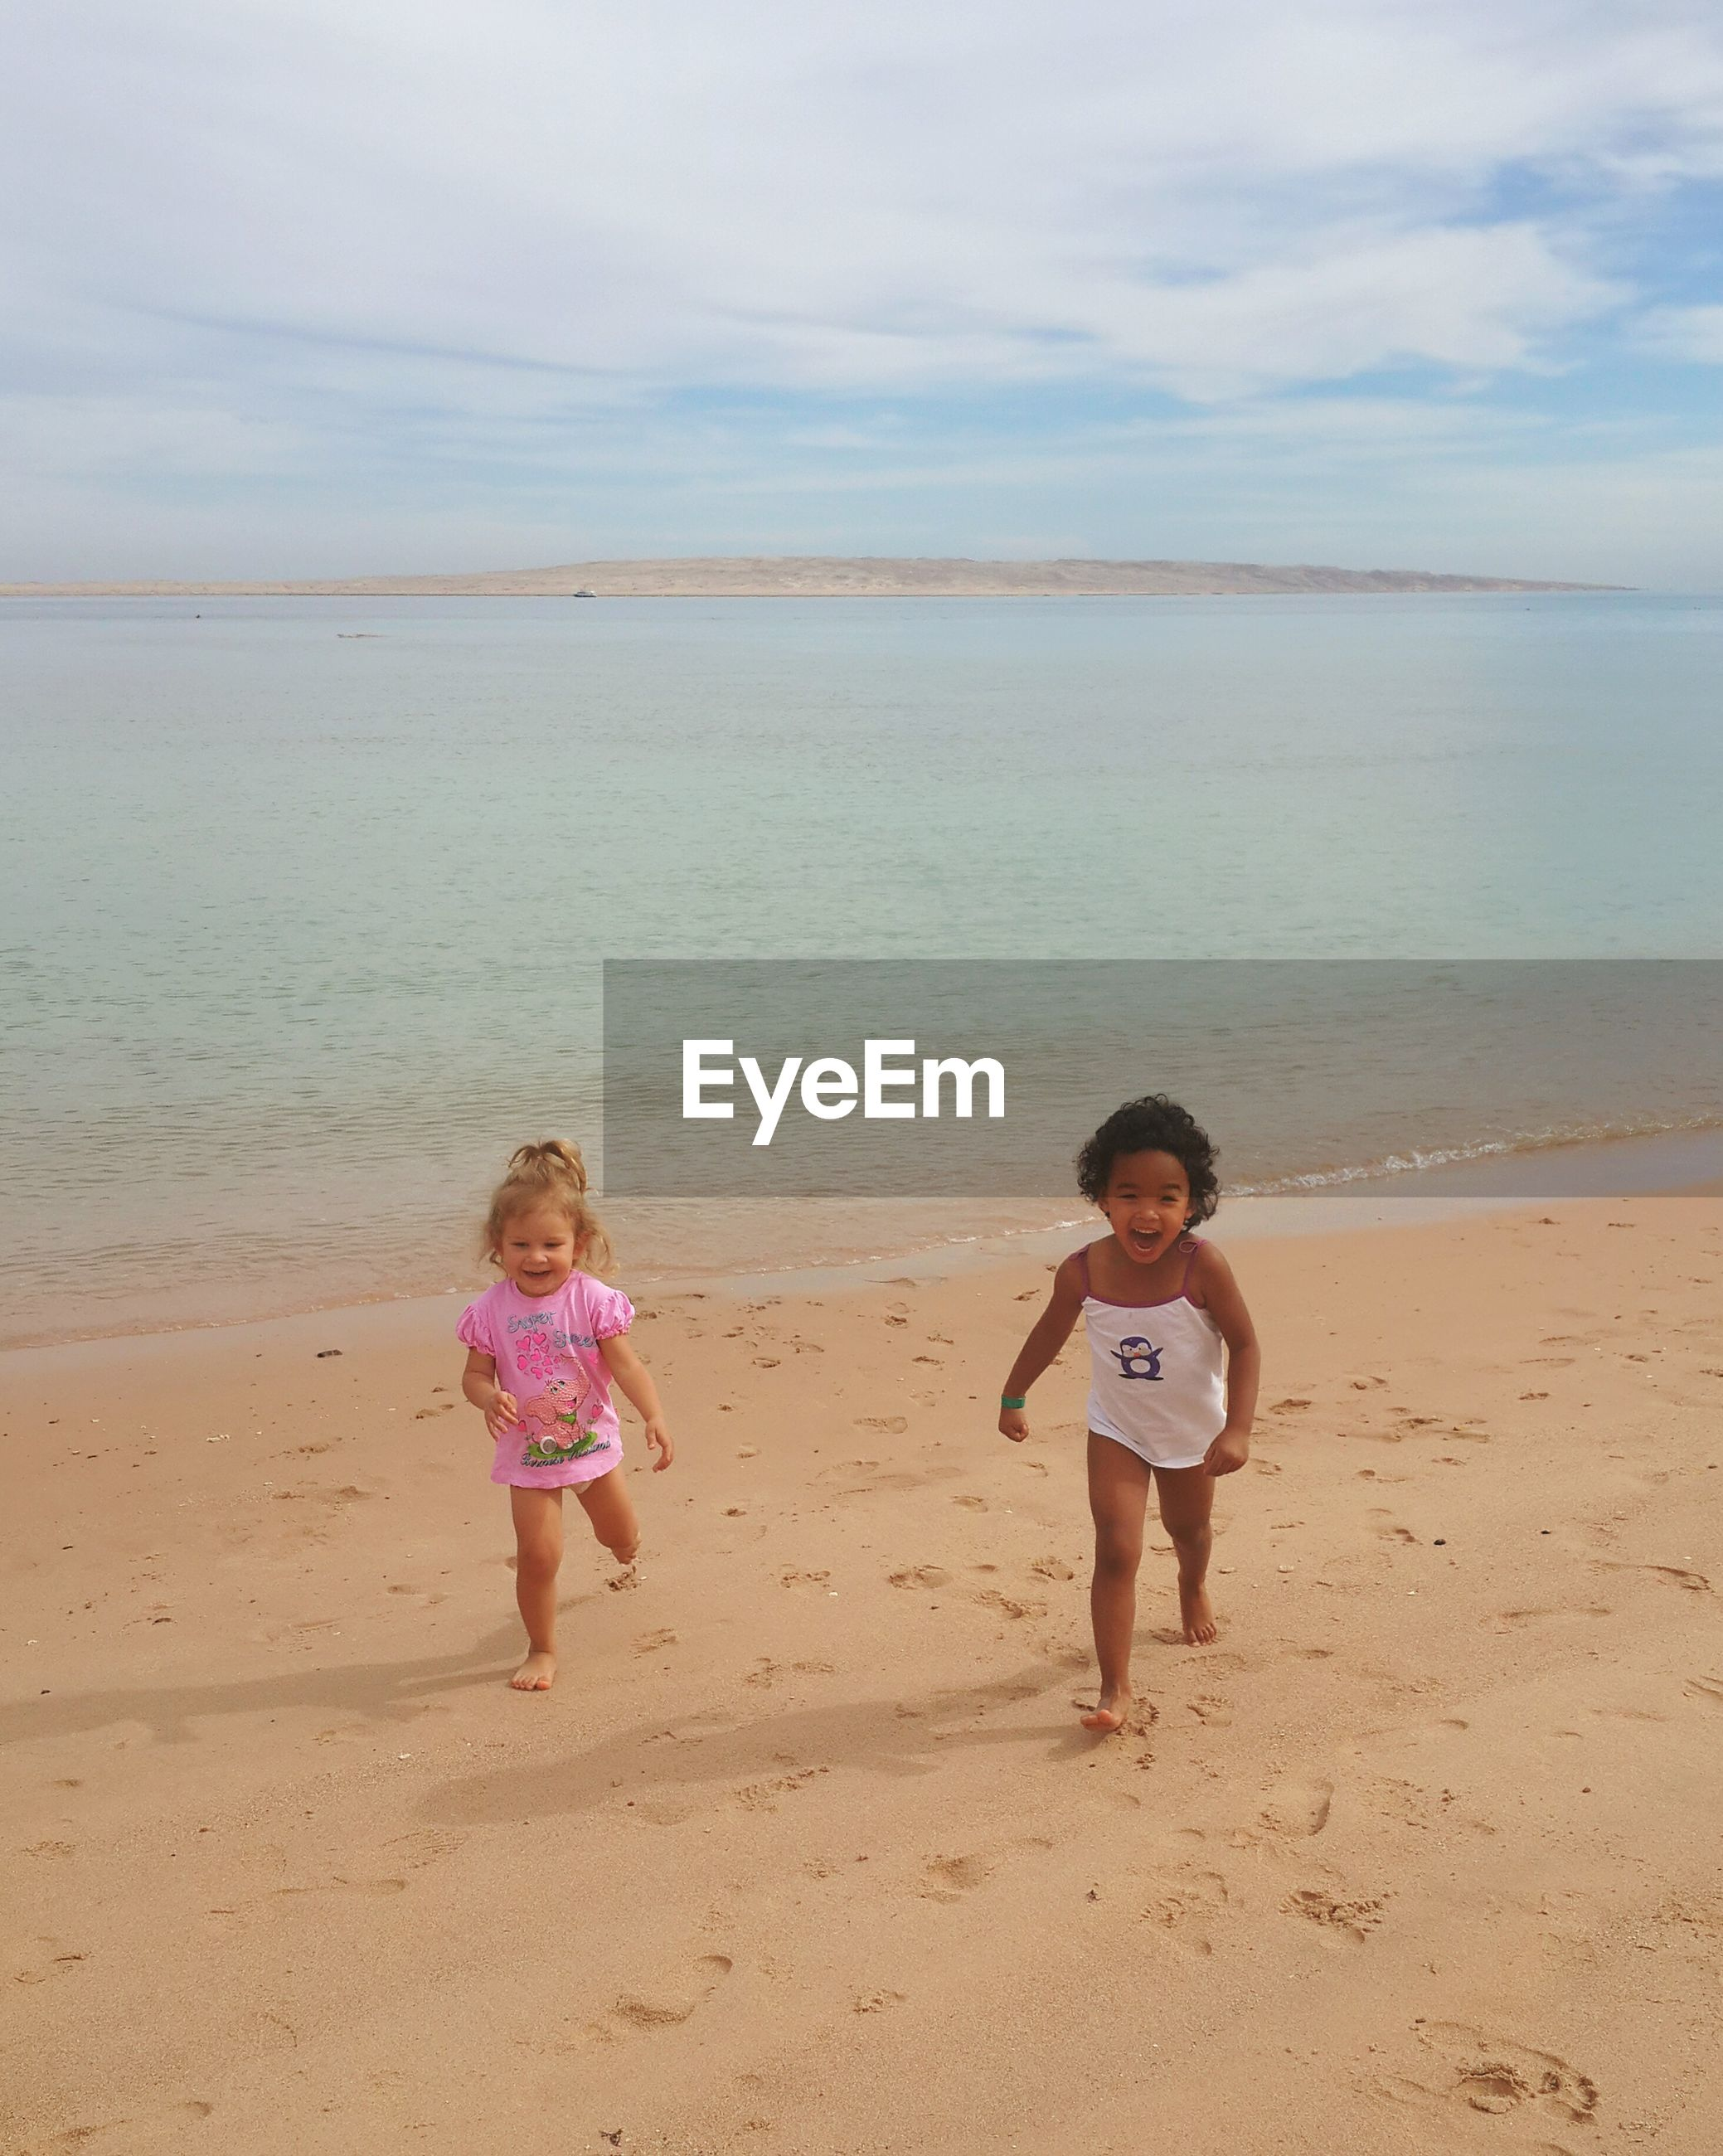 childhood, beach, elementary age, person, boys, girls, full length, lifestyles, leisure activity, togetherness, sand, casual clothing, bonding, shore, family, sea, innocence, love, sibling